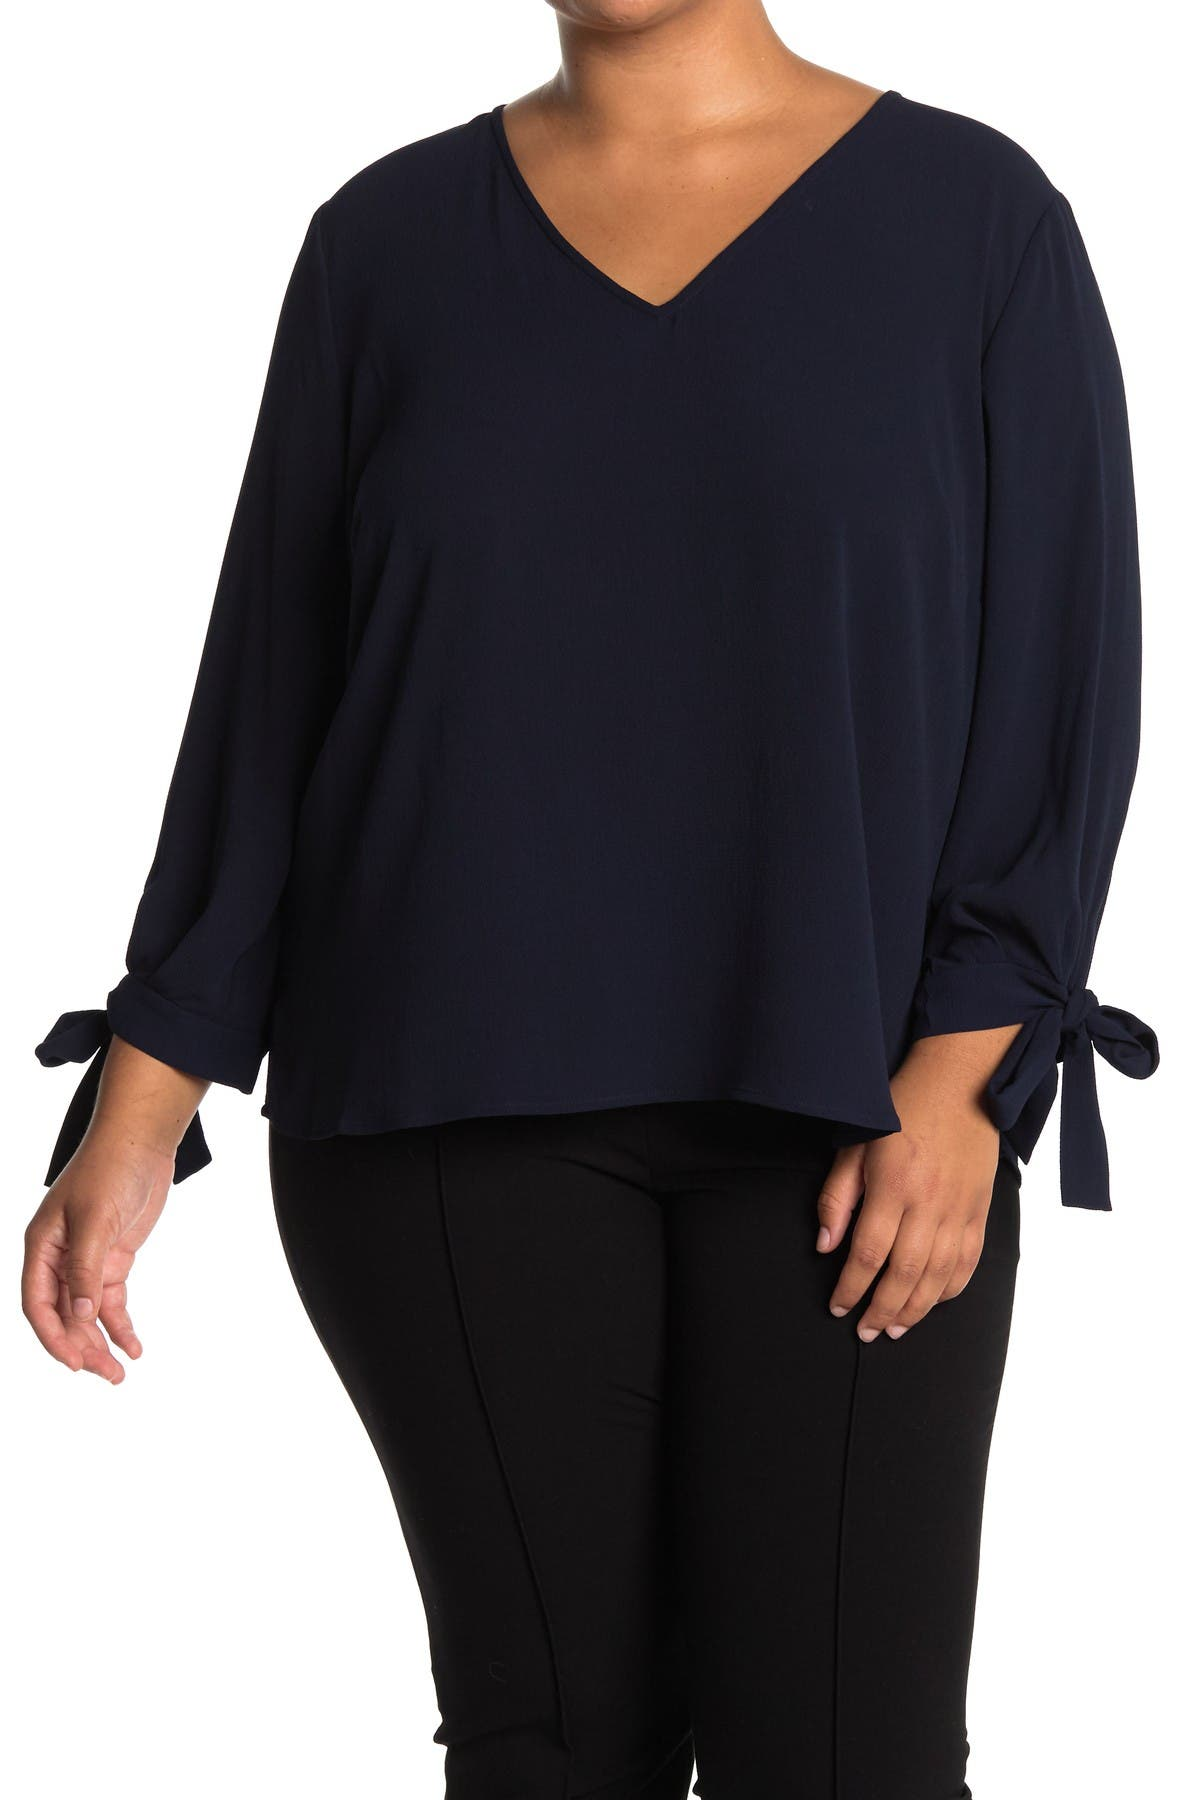 Image of CeCe by Cynthia Steffe 3/4 Sleeve V-Neck Blouse With Tie Sleeves